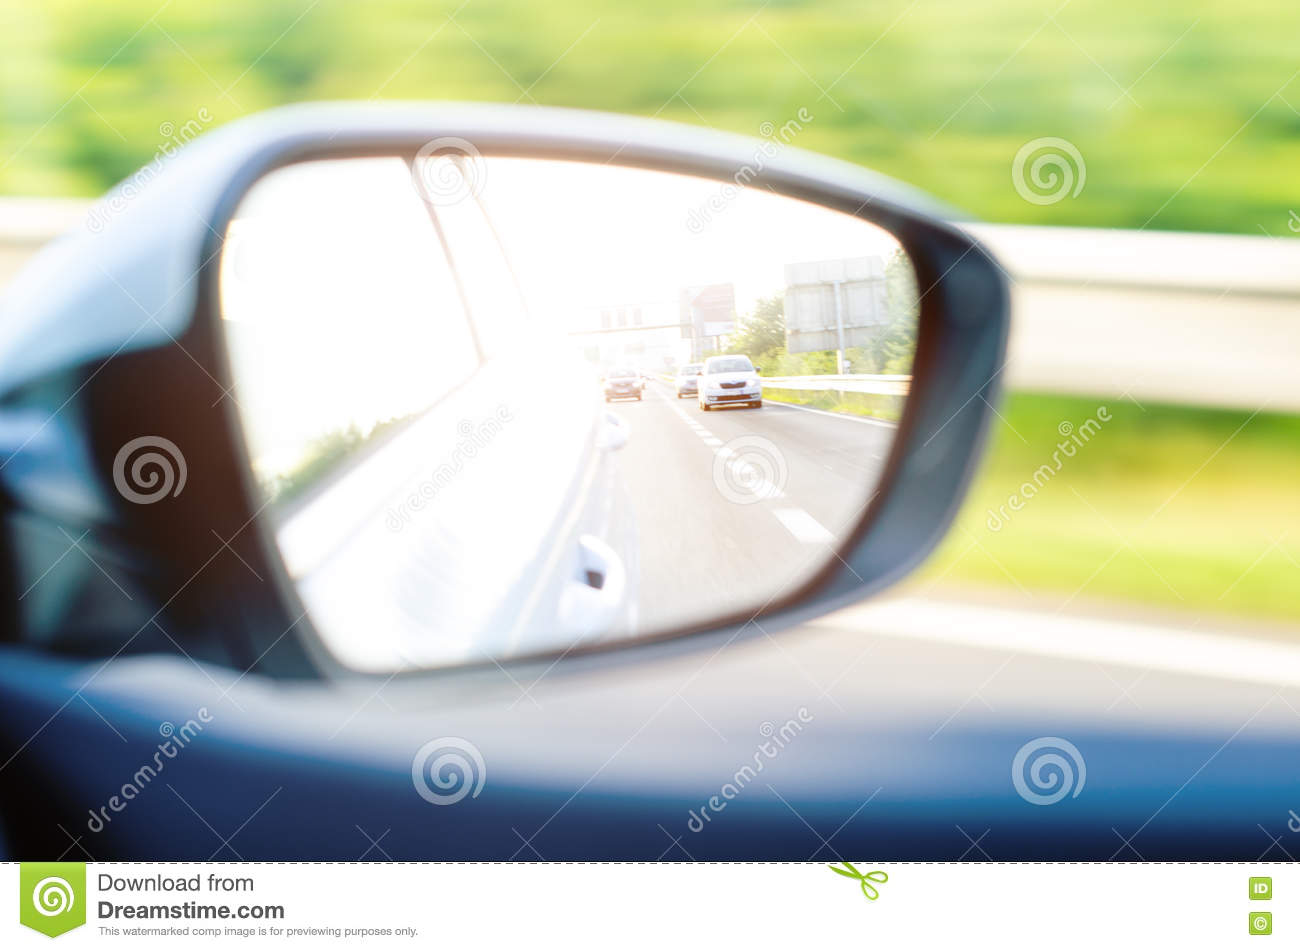 Driving A Car In The View The Rear Window Royalty-Free